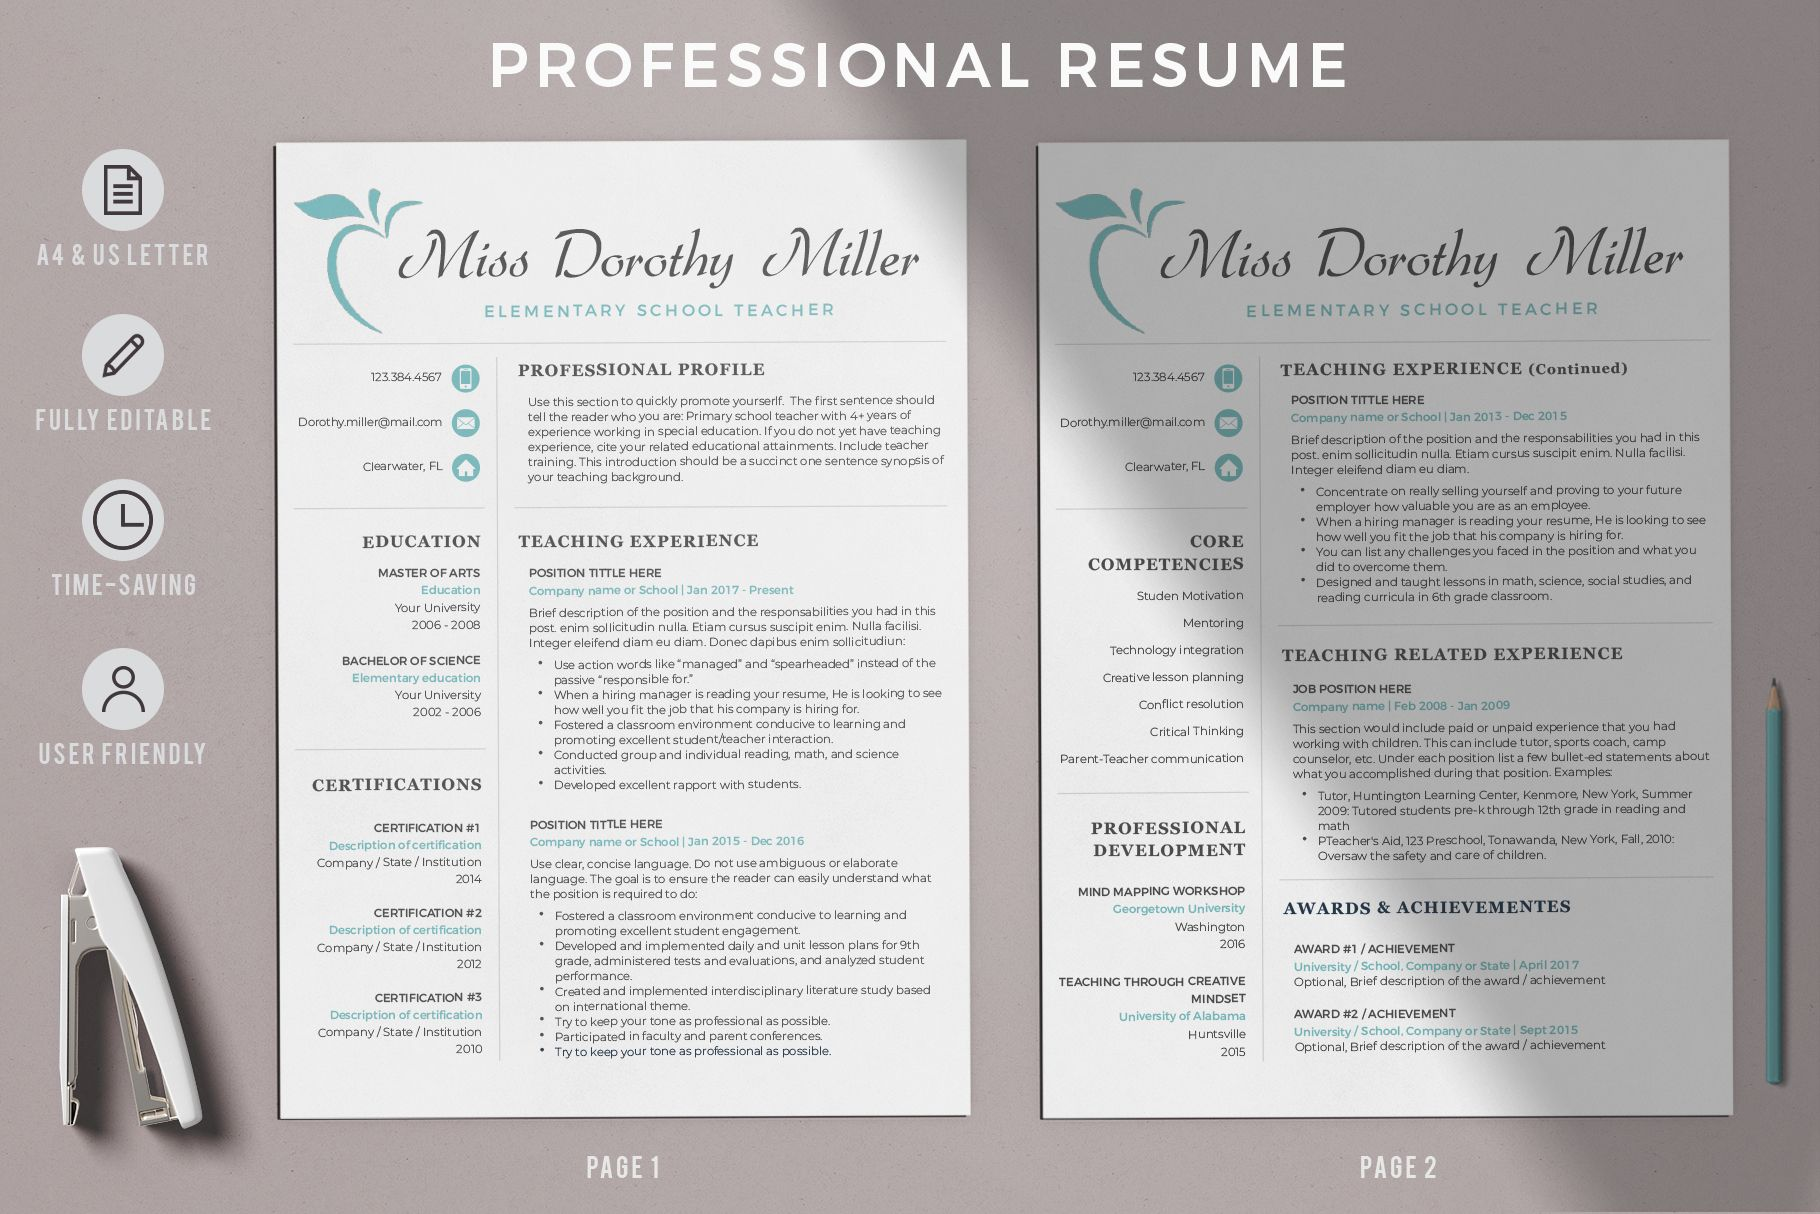 Creative Resume Templates For Ms Word And Mac Pages Professional Resume Templates And Matching In 2020 Elementary Teacher Resume Teacher Resume Design Teacher Resume